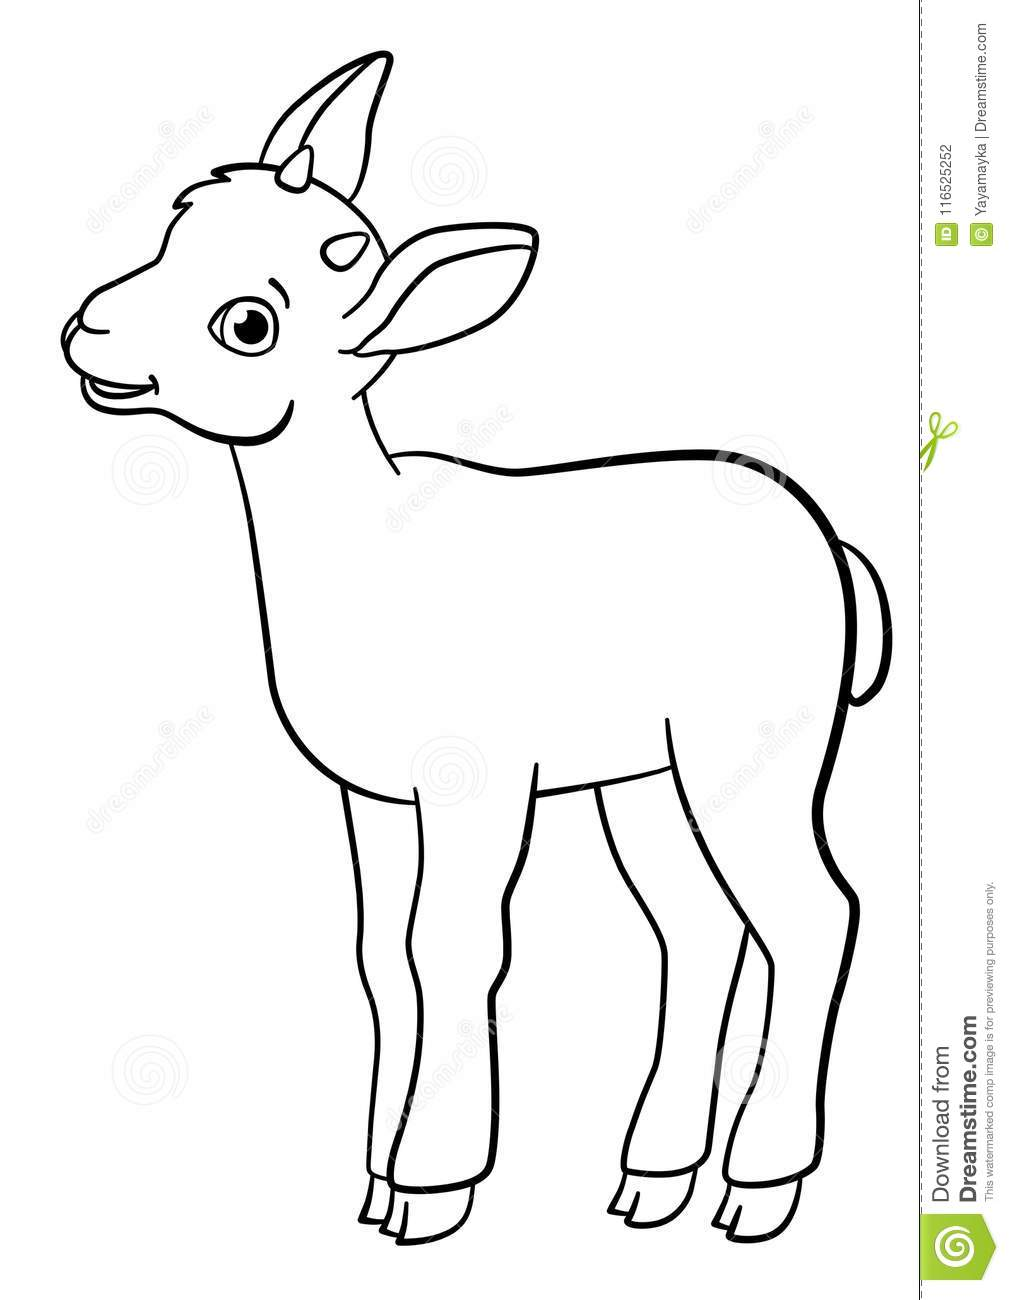 Free Printable Cow Coloring Pages For Kids | 1300x1009